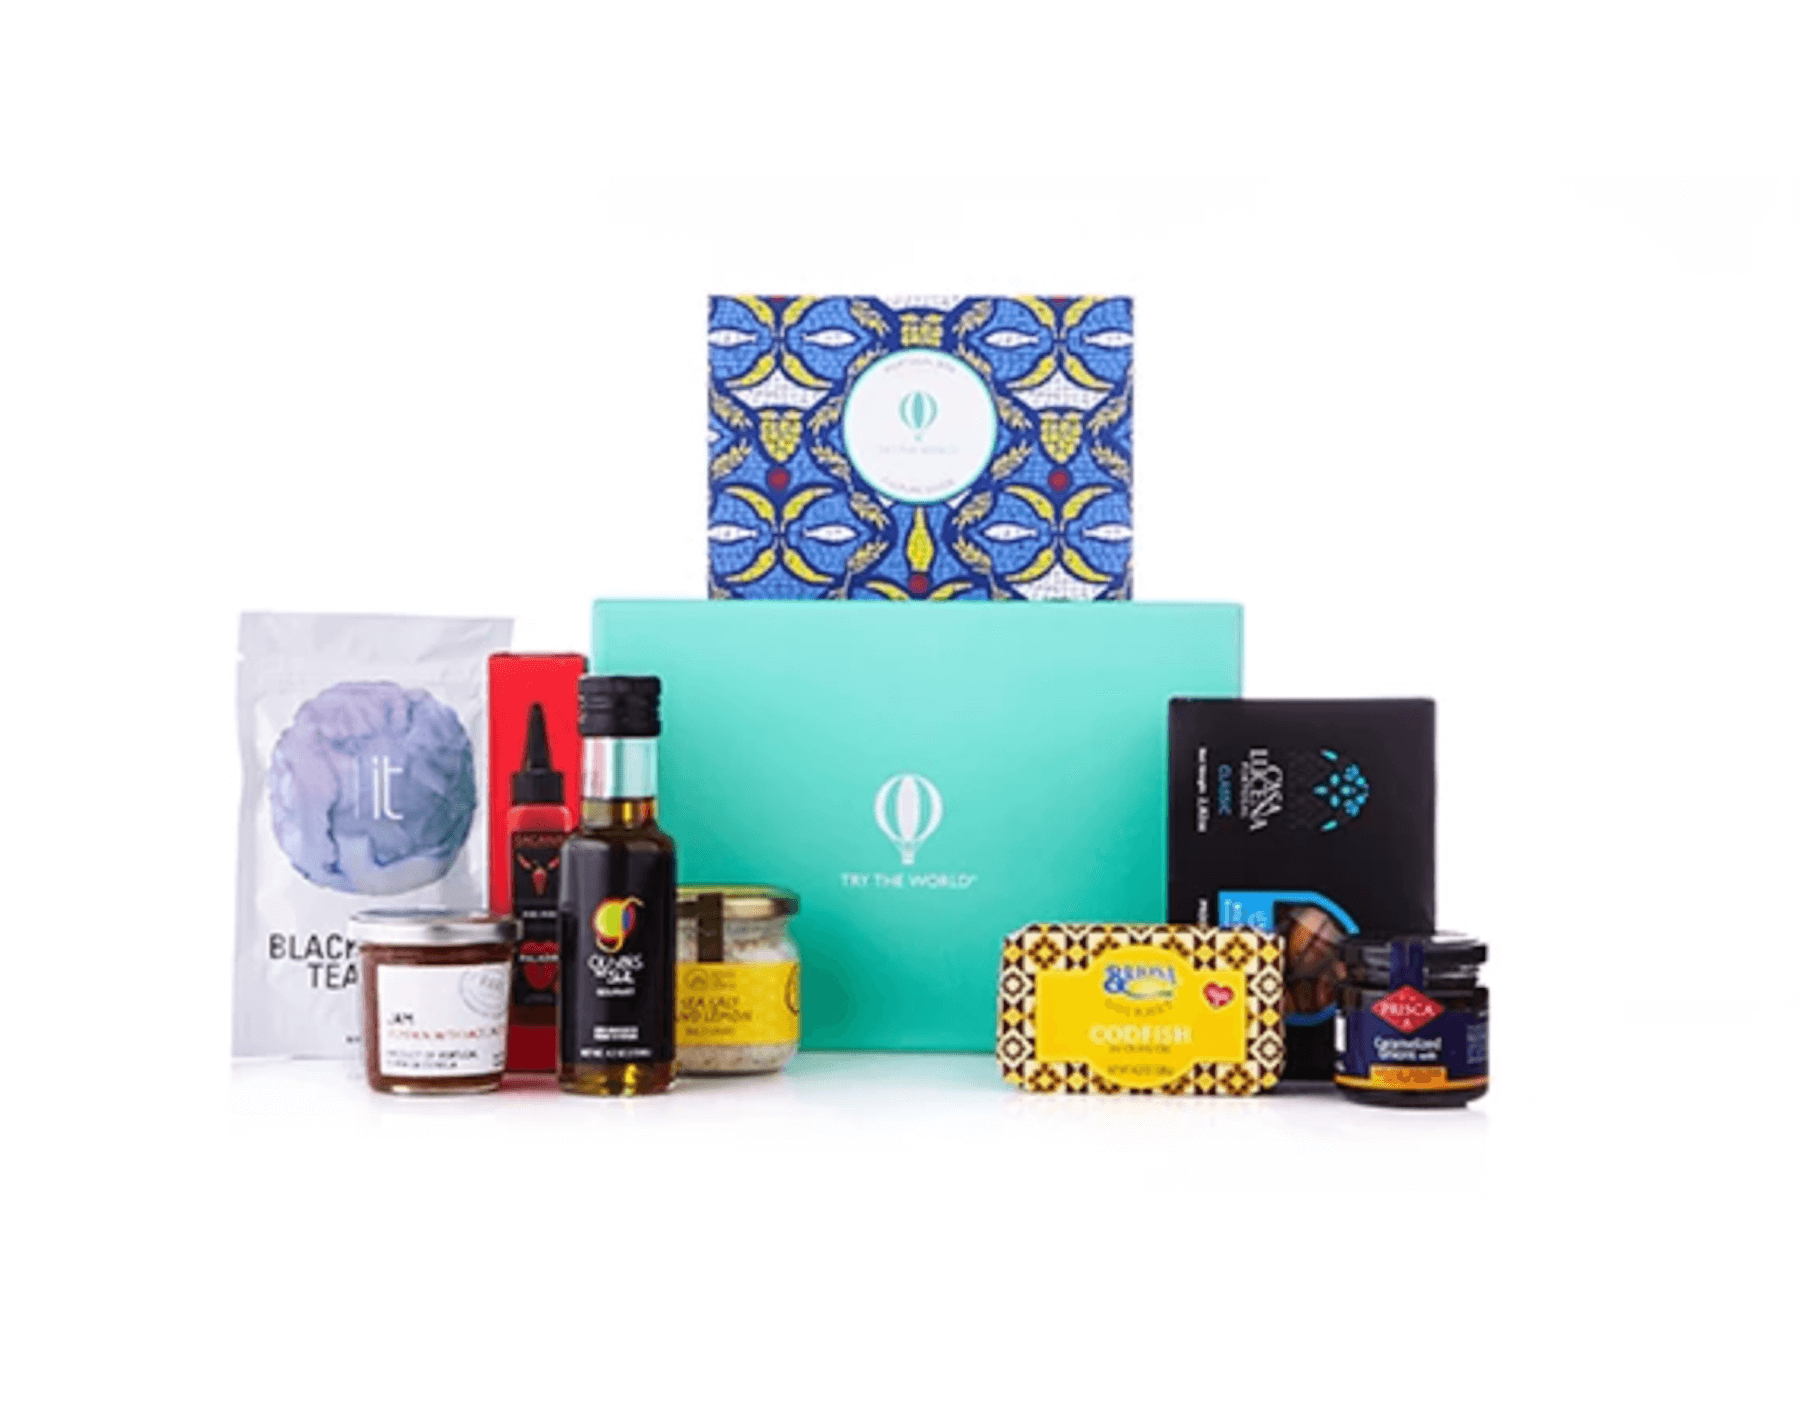 image of a gift box from the online shop Try the World